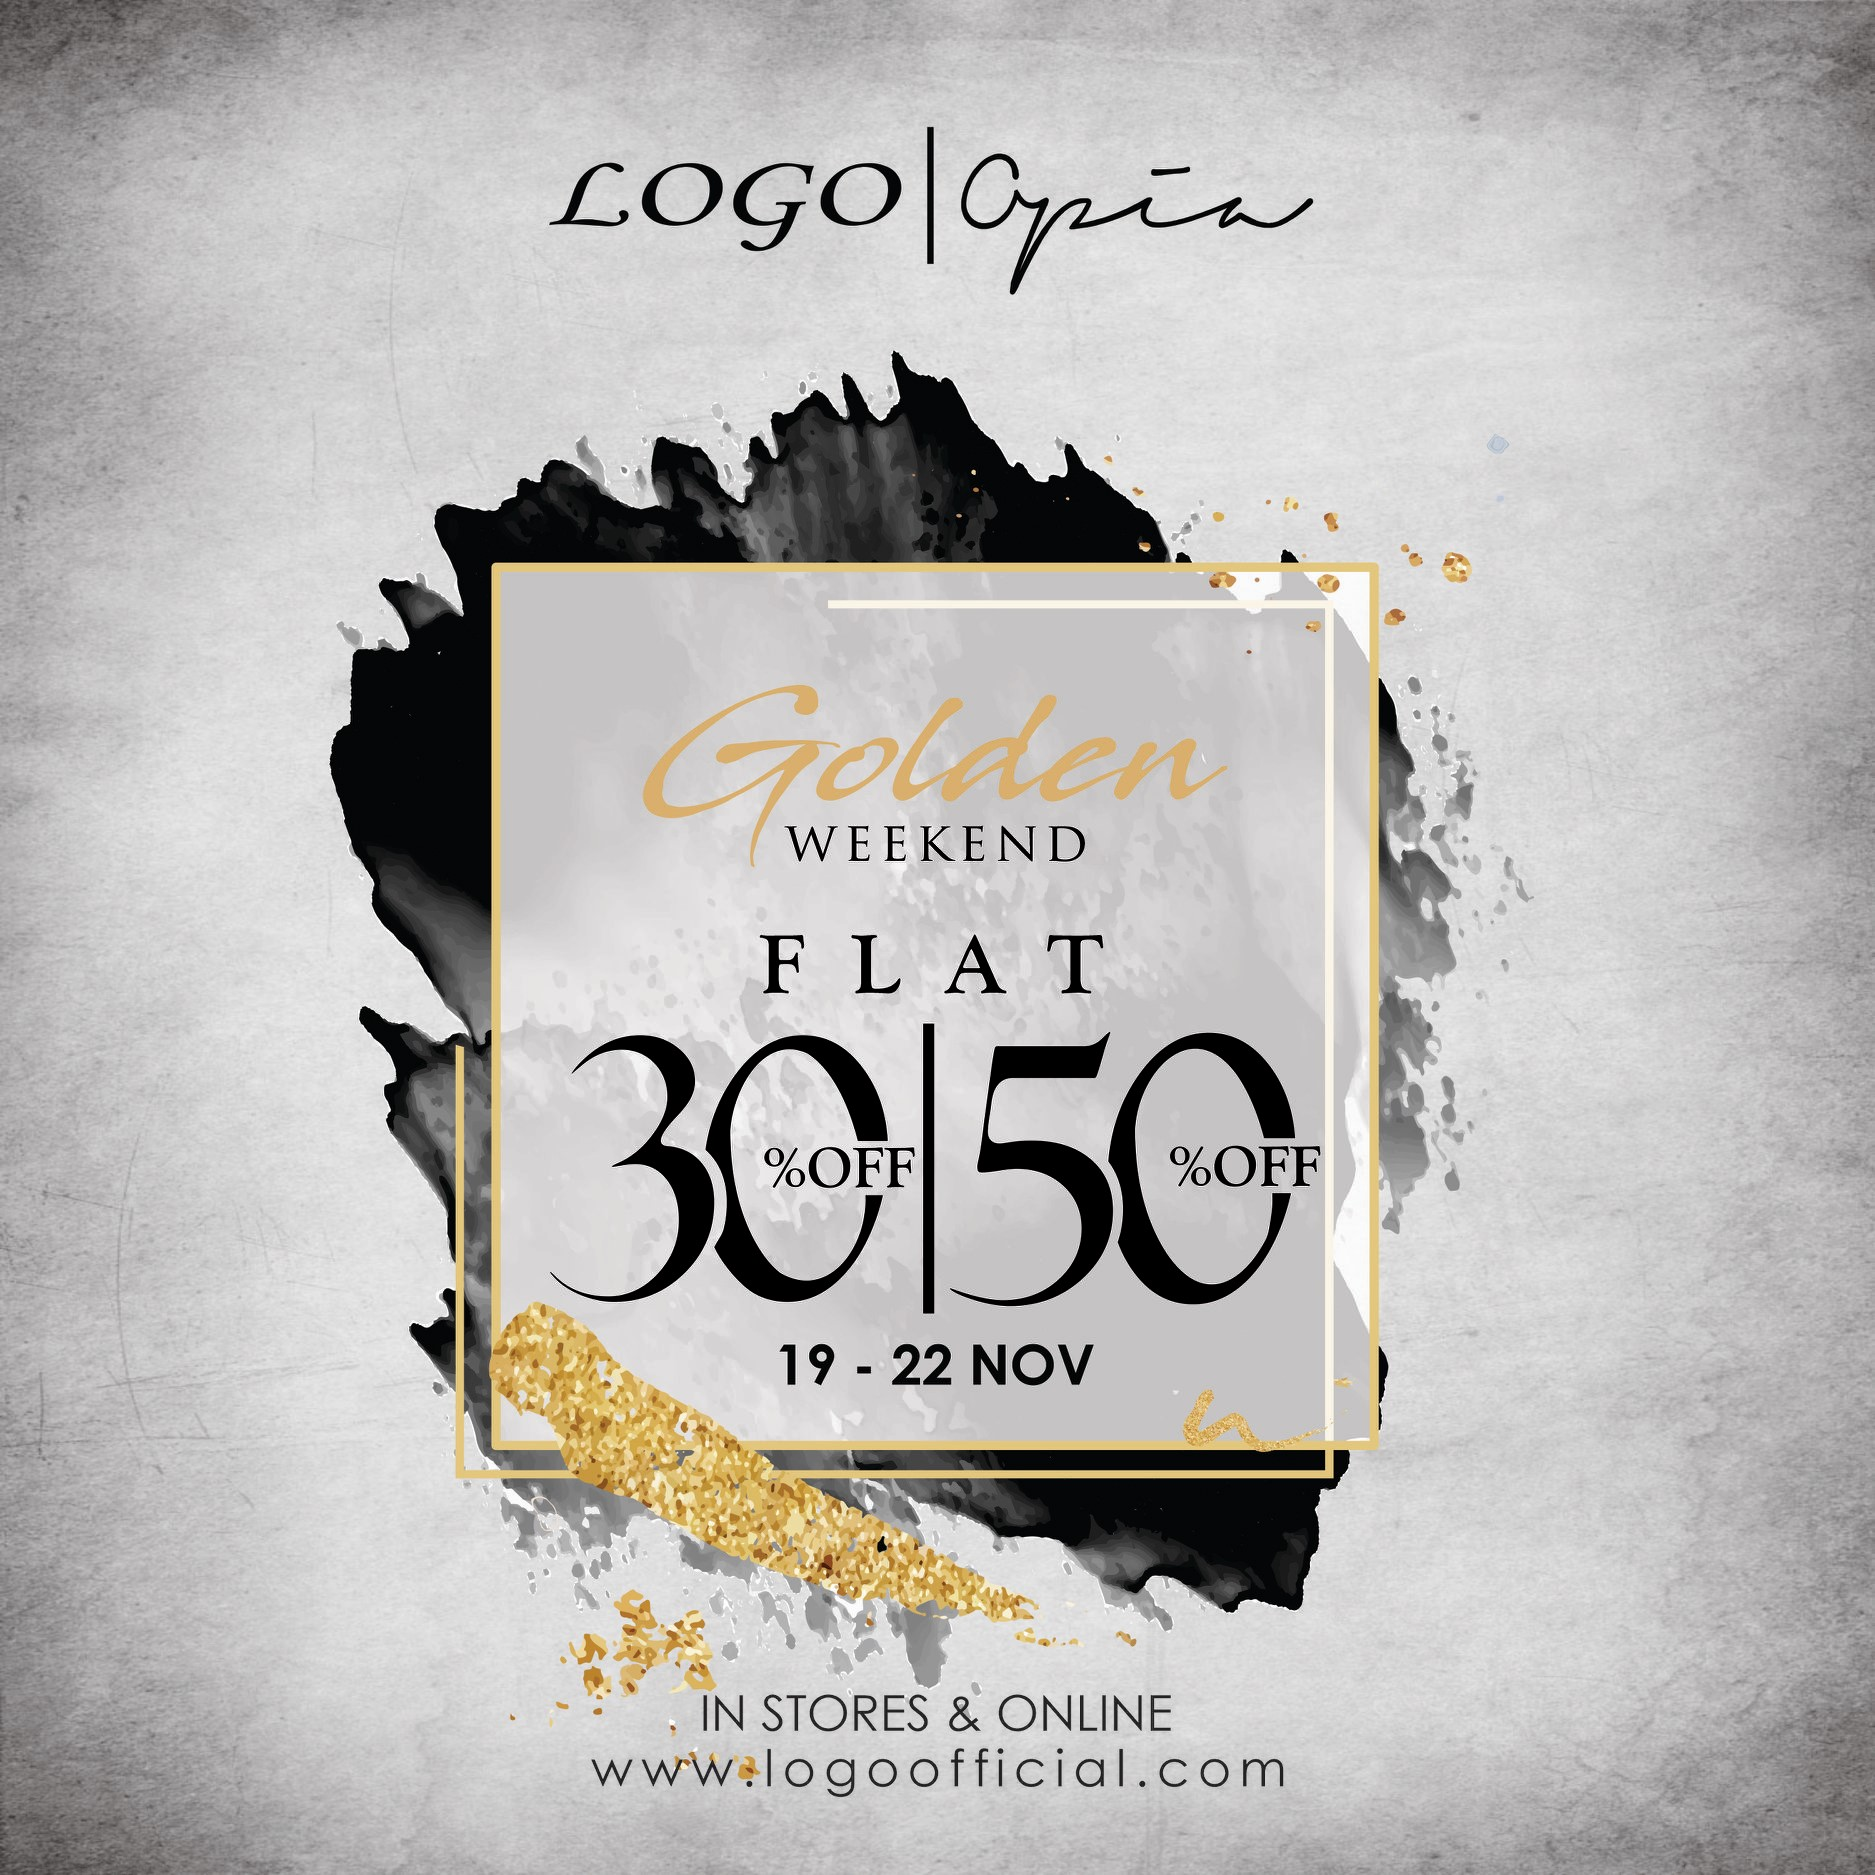 Logo - GOLDEN WEEKEND